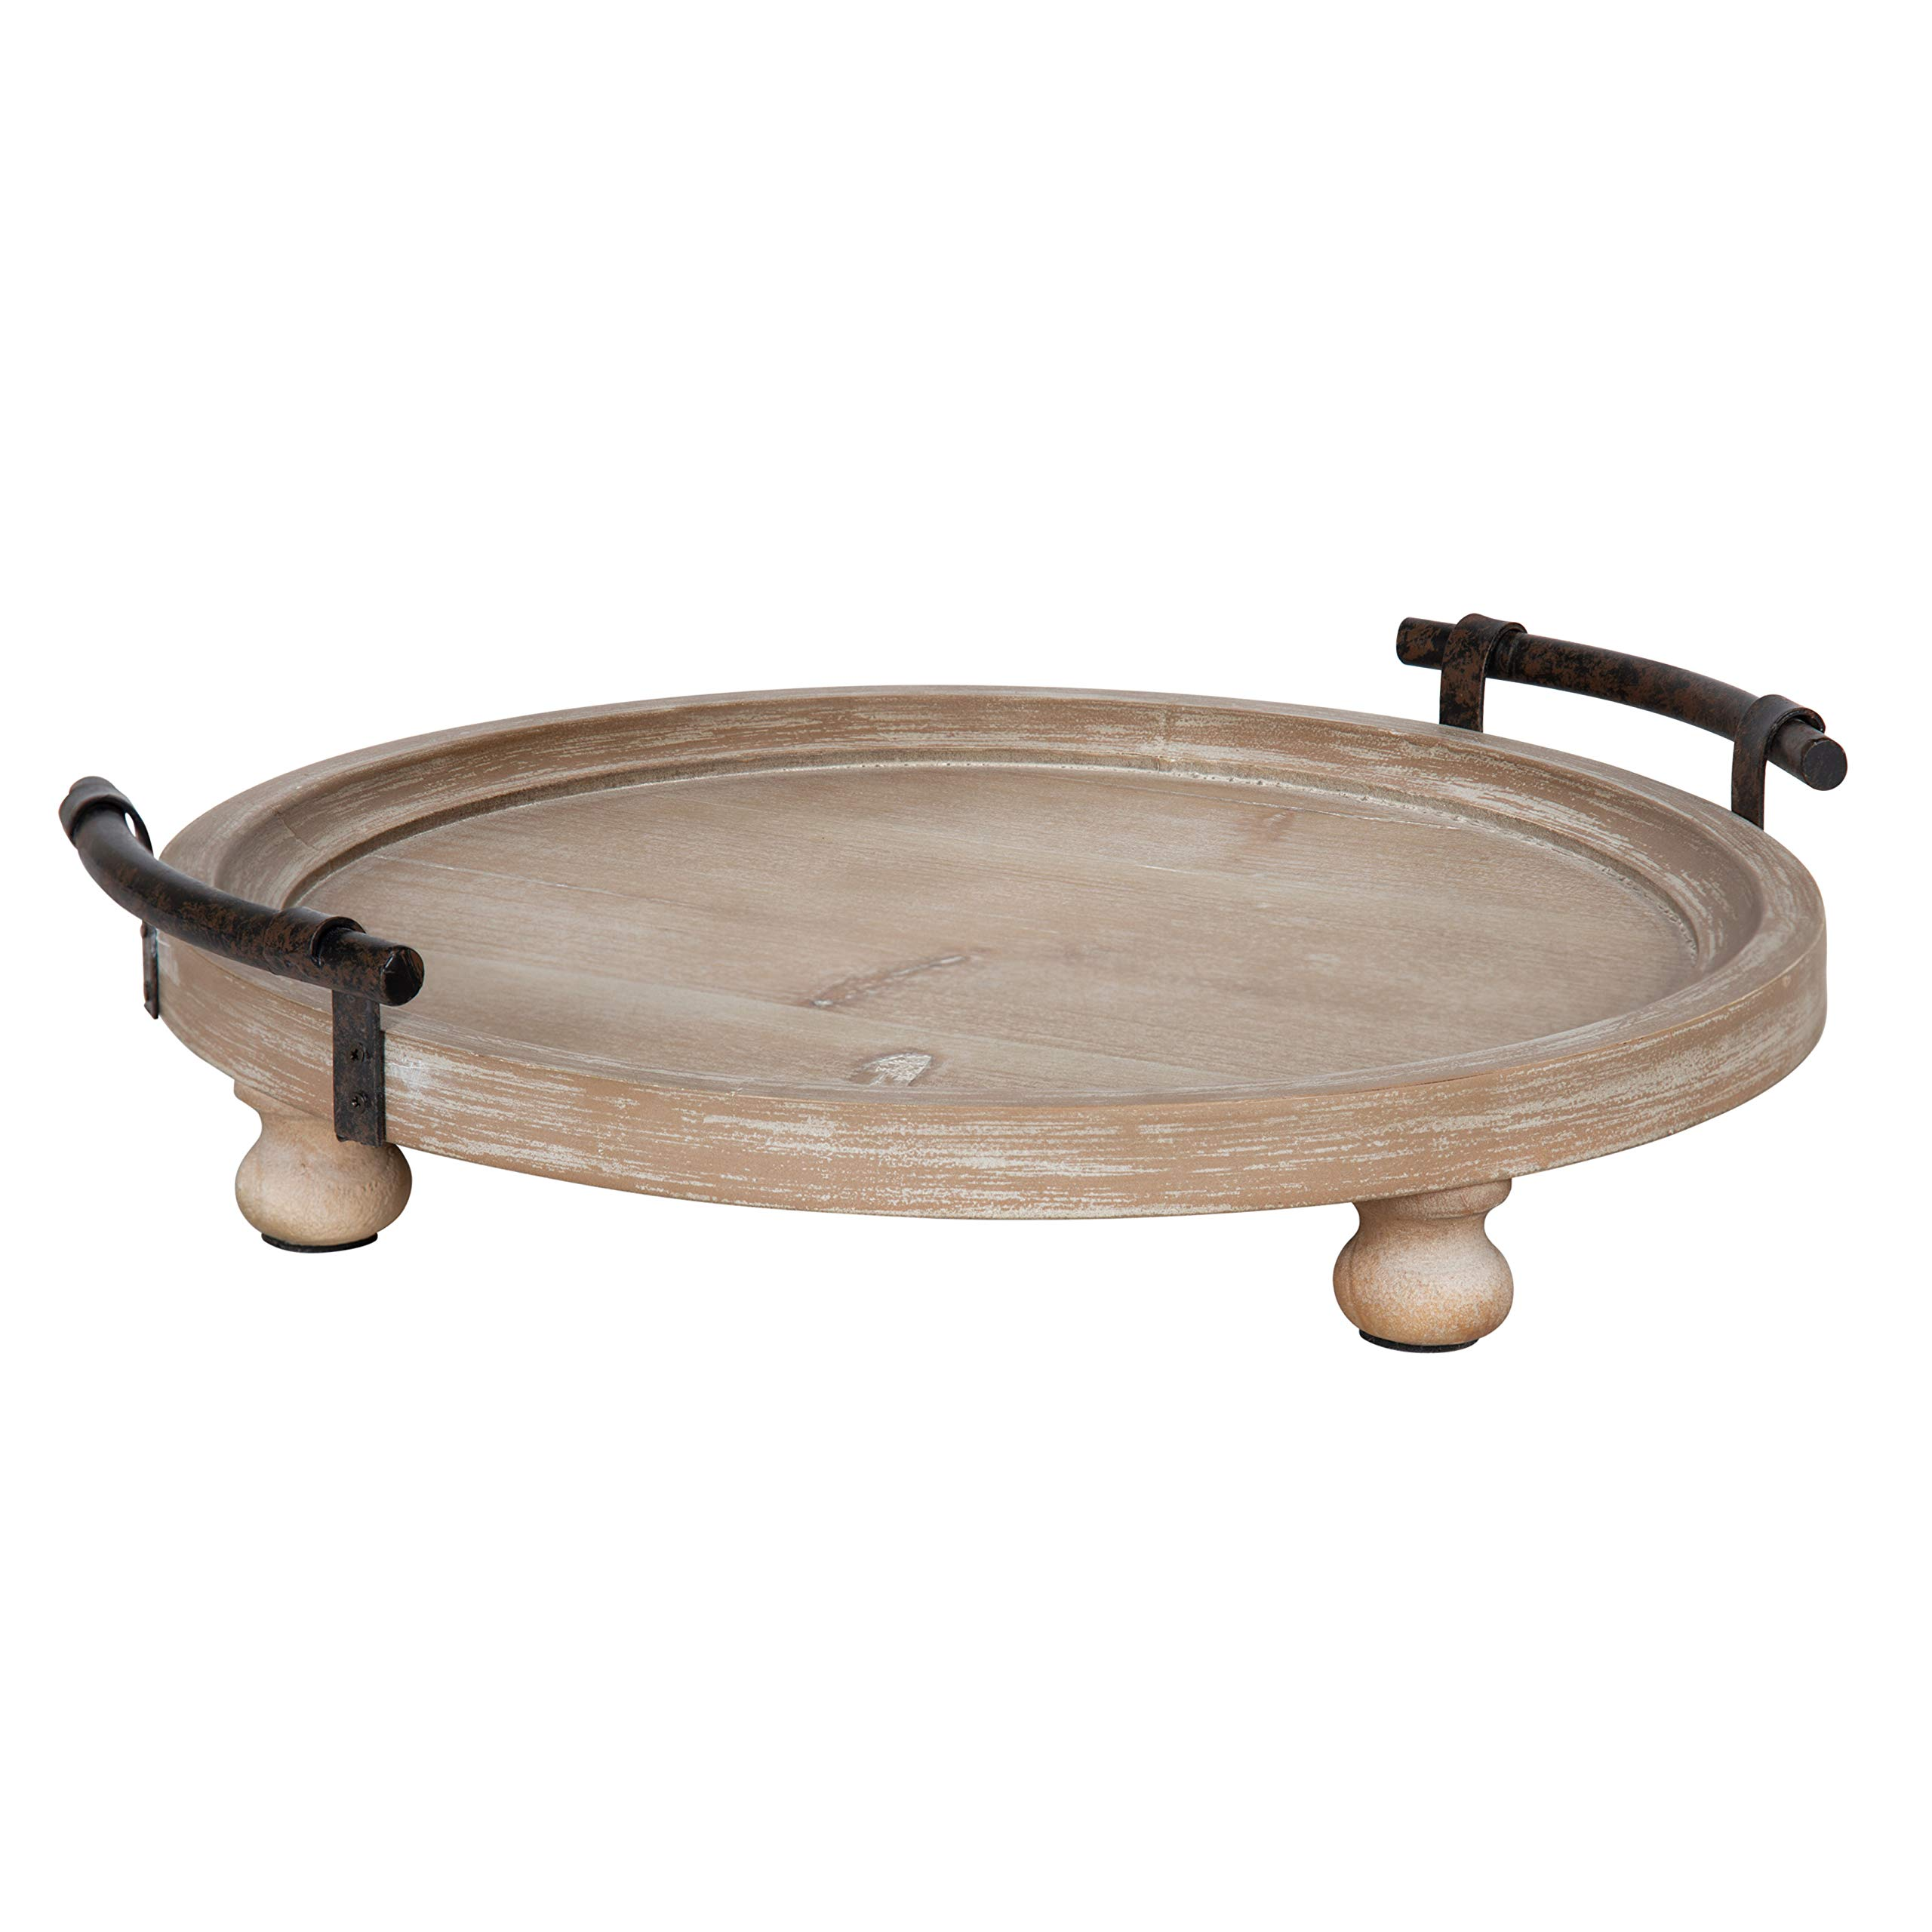 Kate and Laurel Bruillet Round Wooden Footed Tray with Handles, 15-inch Diameter, Rustic Finish by Kate and Laurel